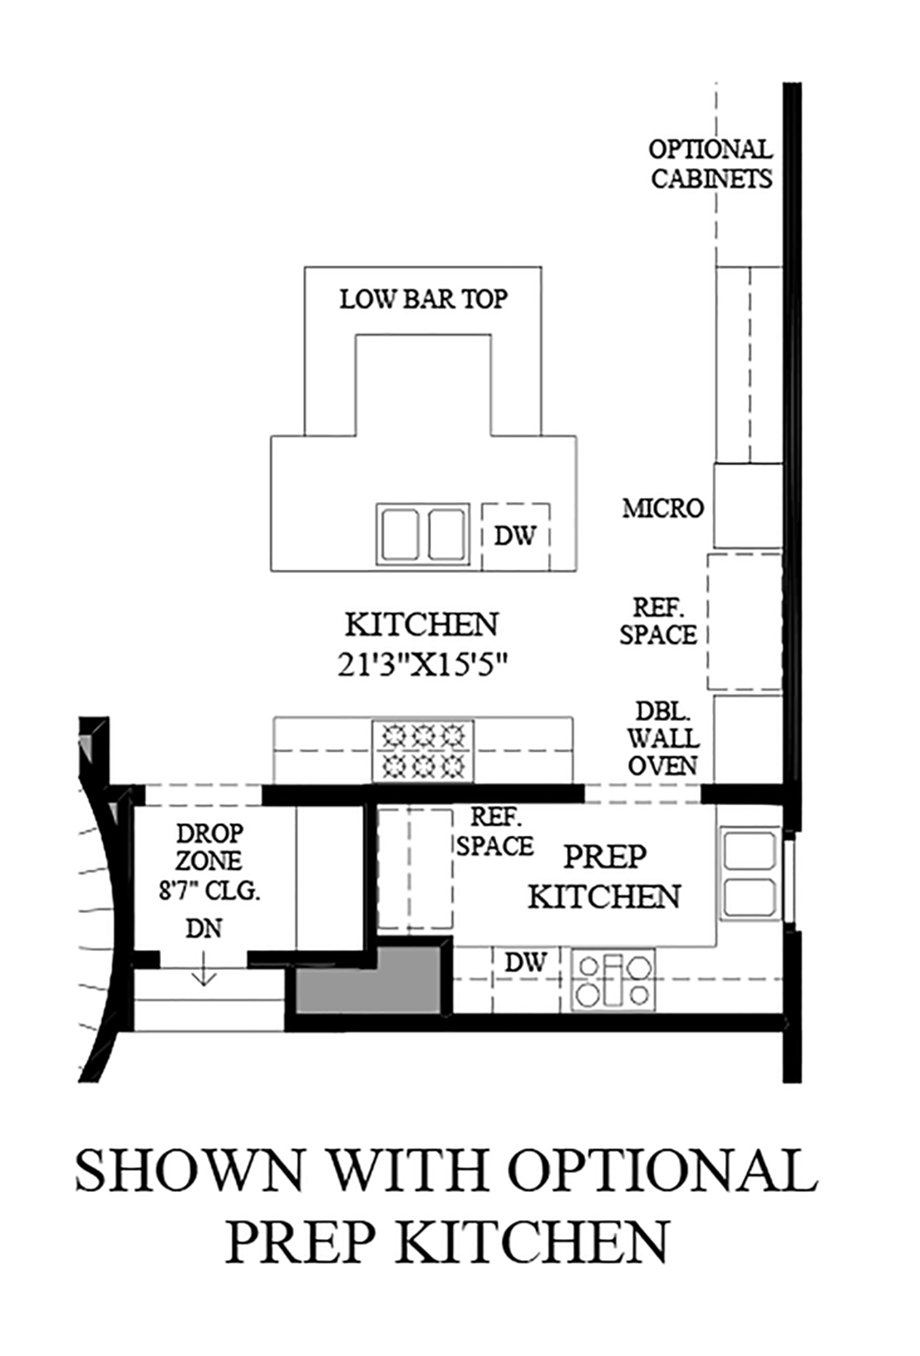 Optional Prep Kitchen